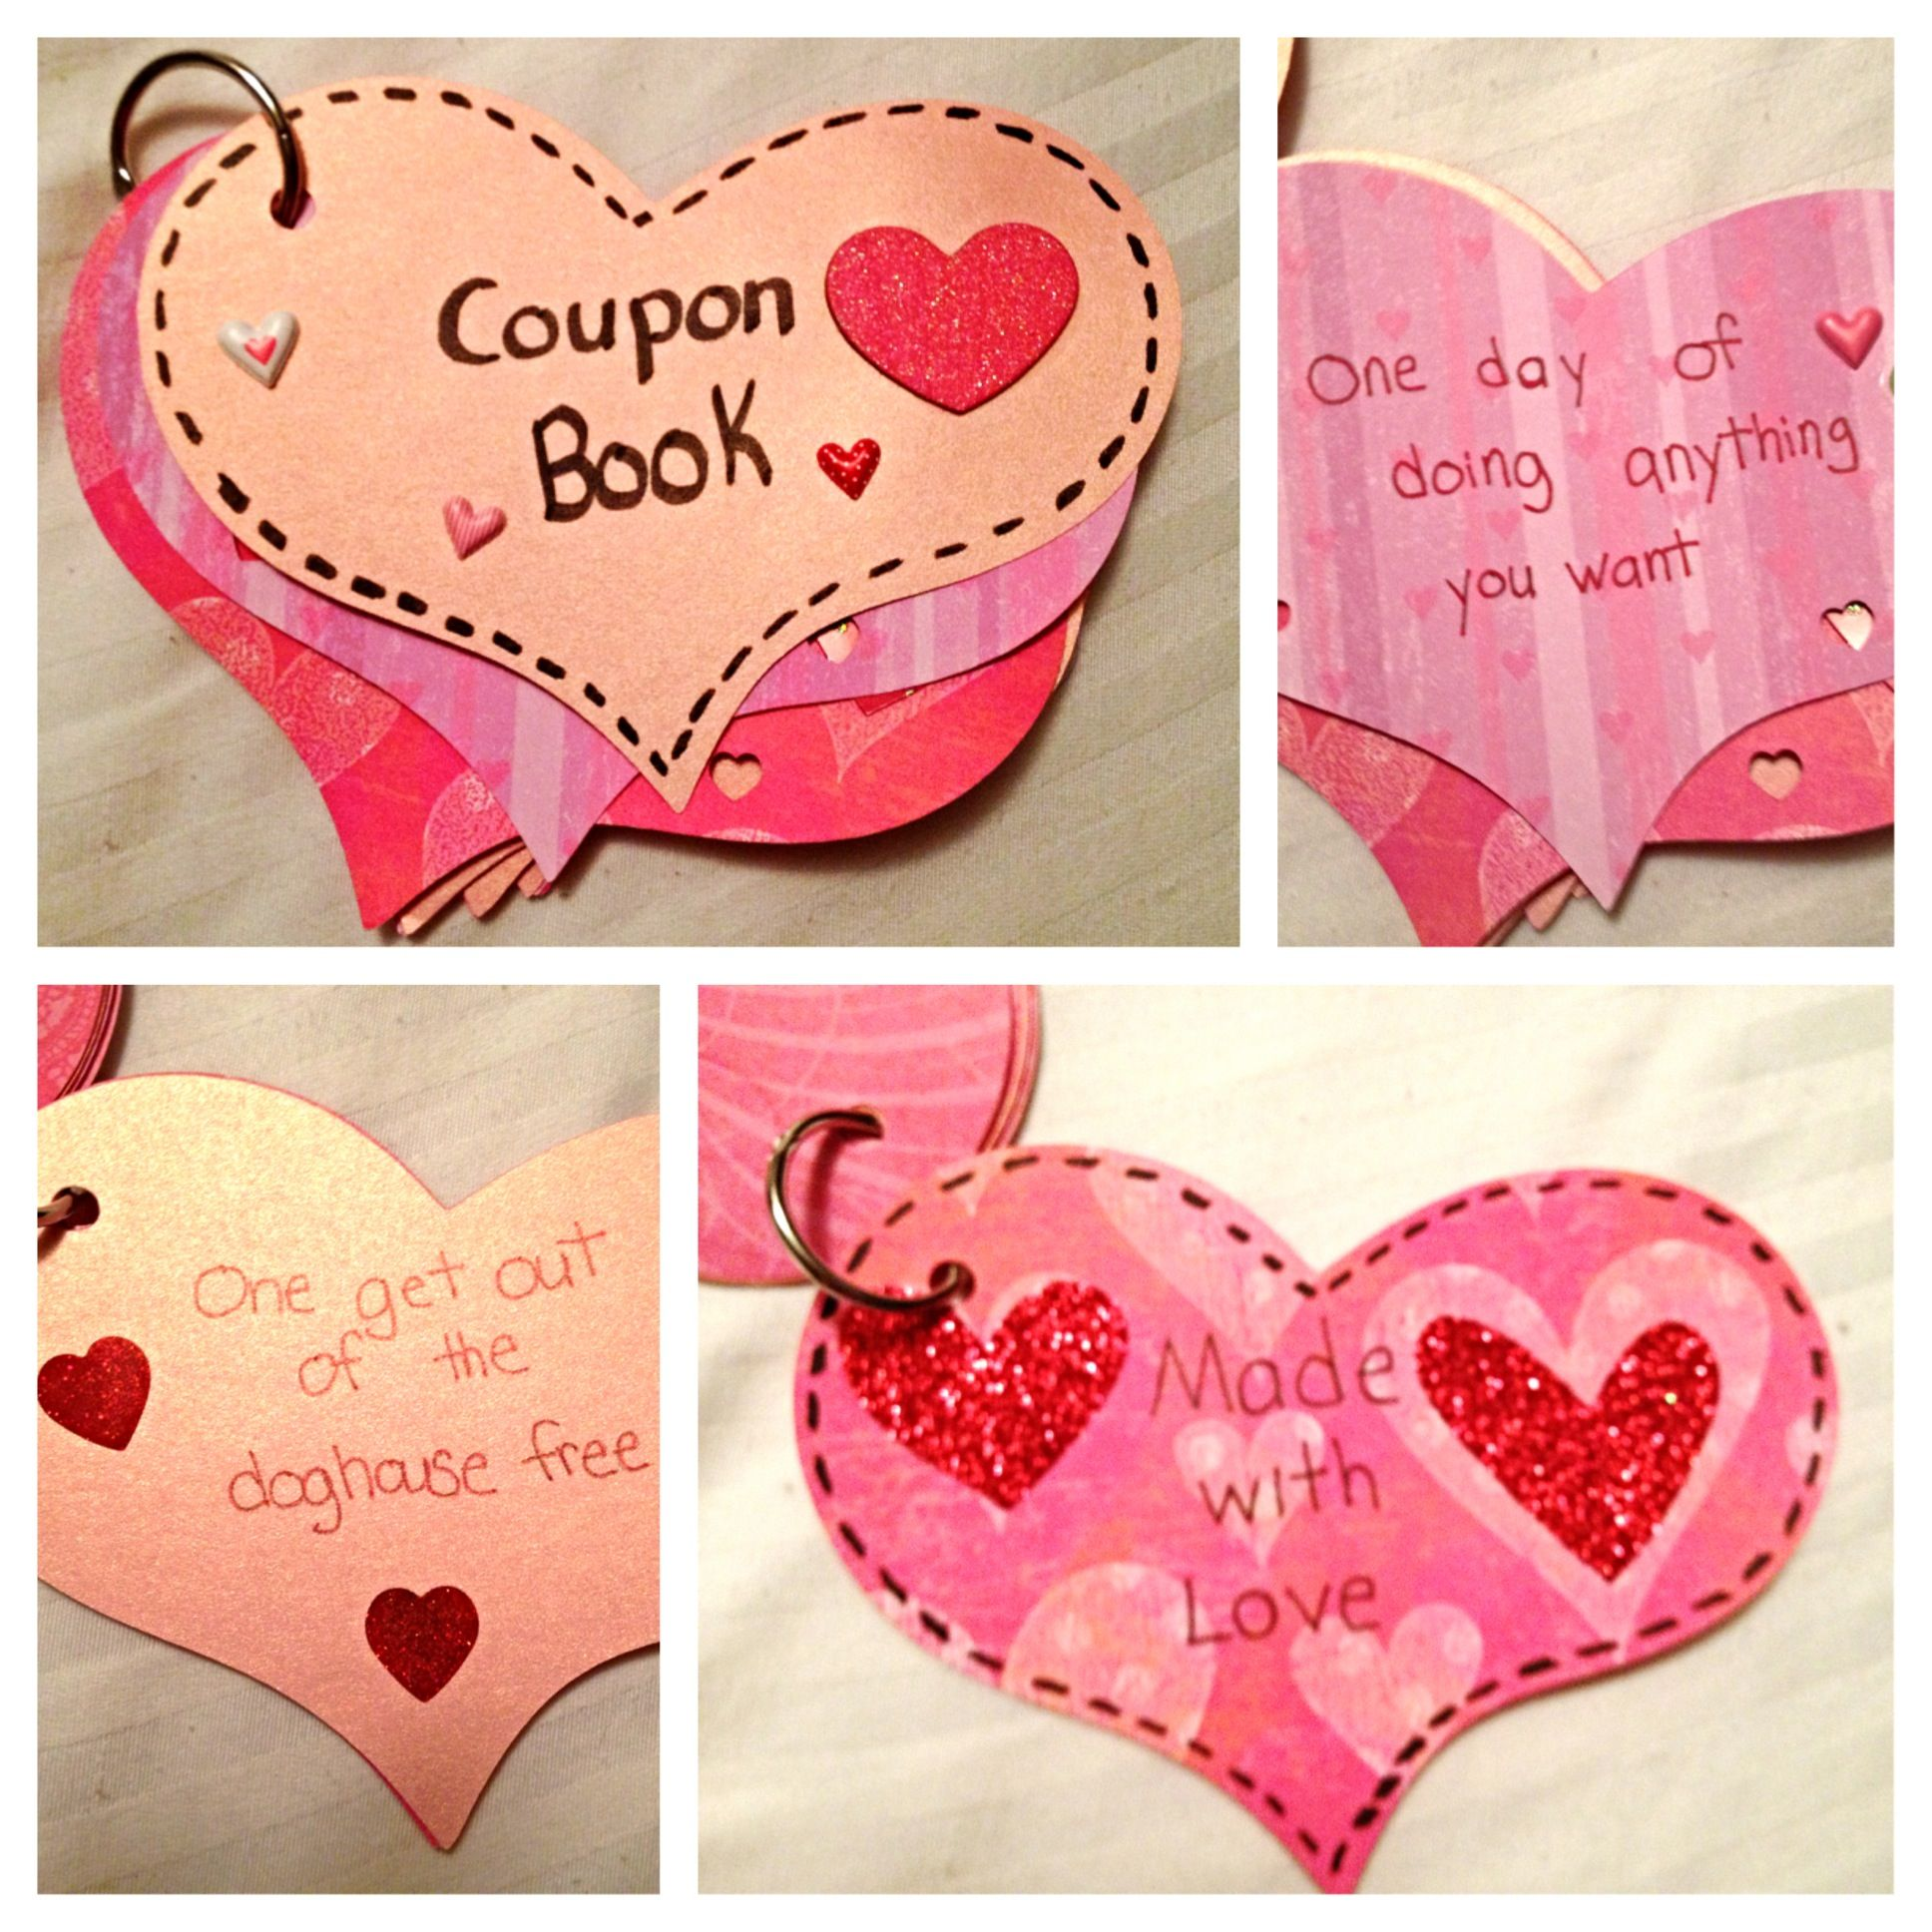 Scrapbook gift ideas for boyfriend - I Made This Coupon Book For My Boyfriend Boyfriend Ideasmy Boyfriendtutorial Scrapbookcoupon Booksvalentine Giftsvalentines